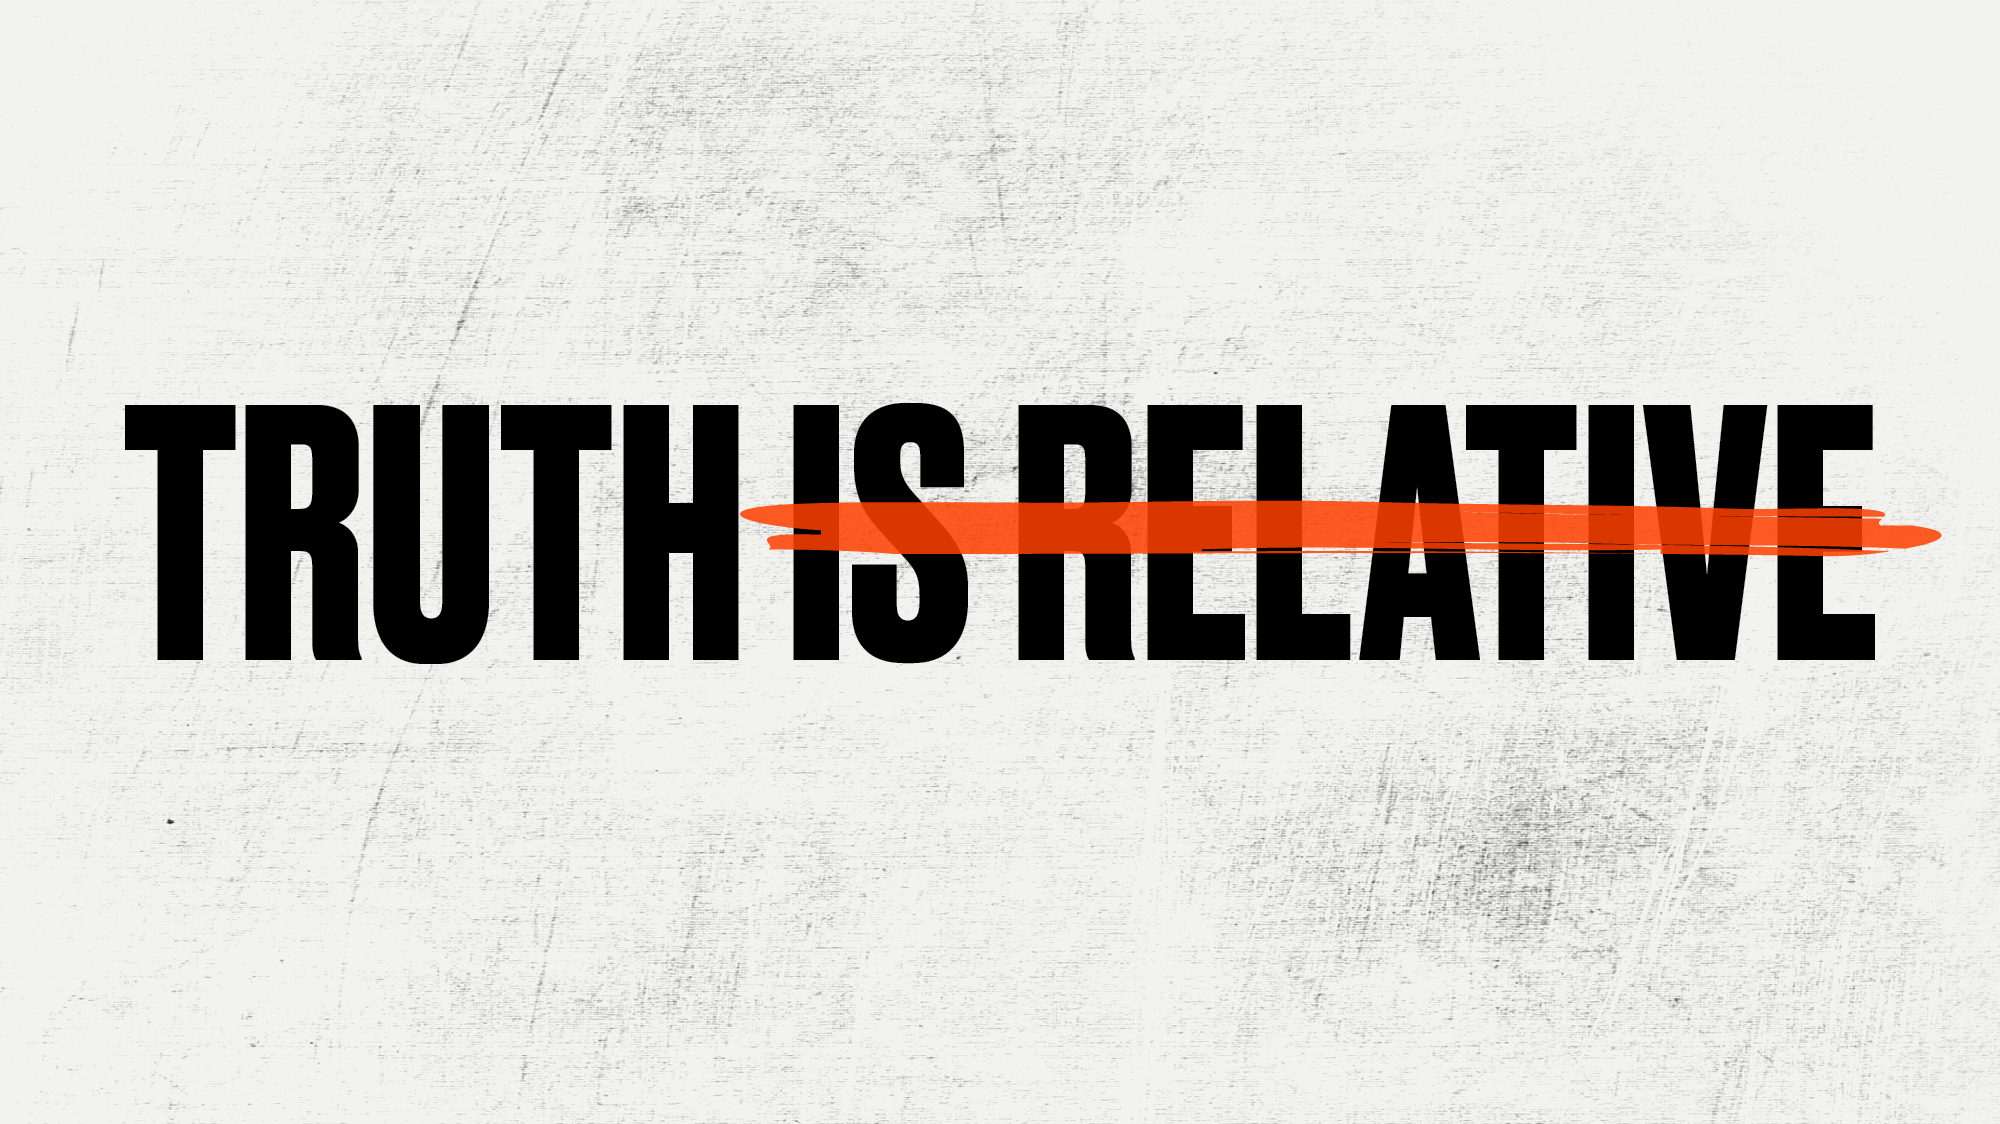 Truth is relative illustration